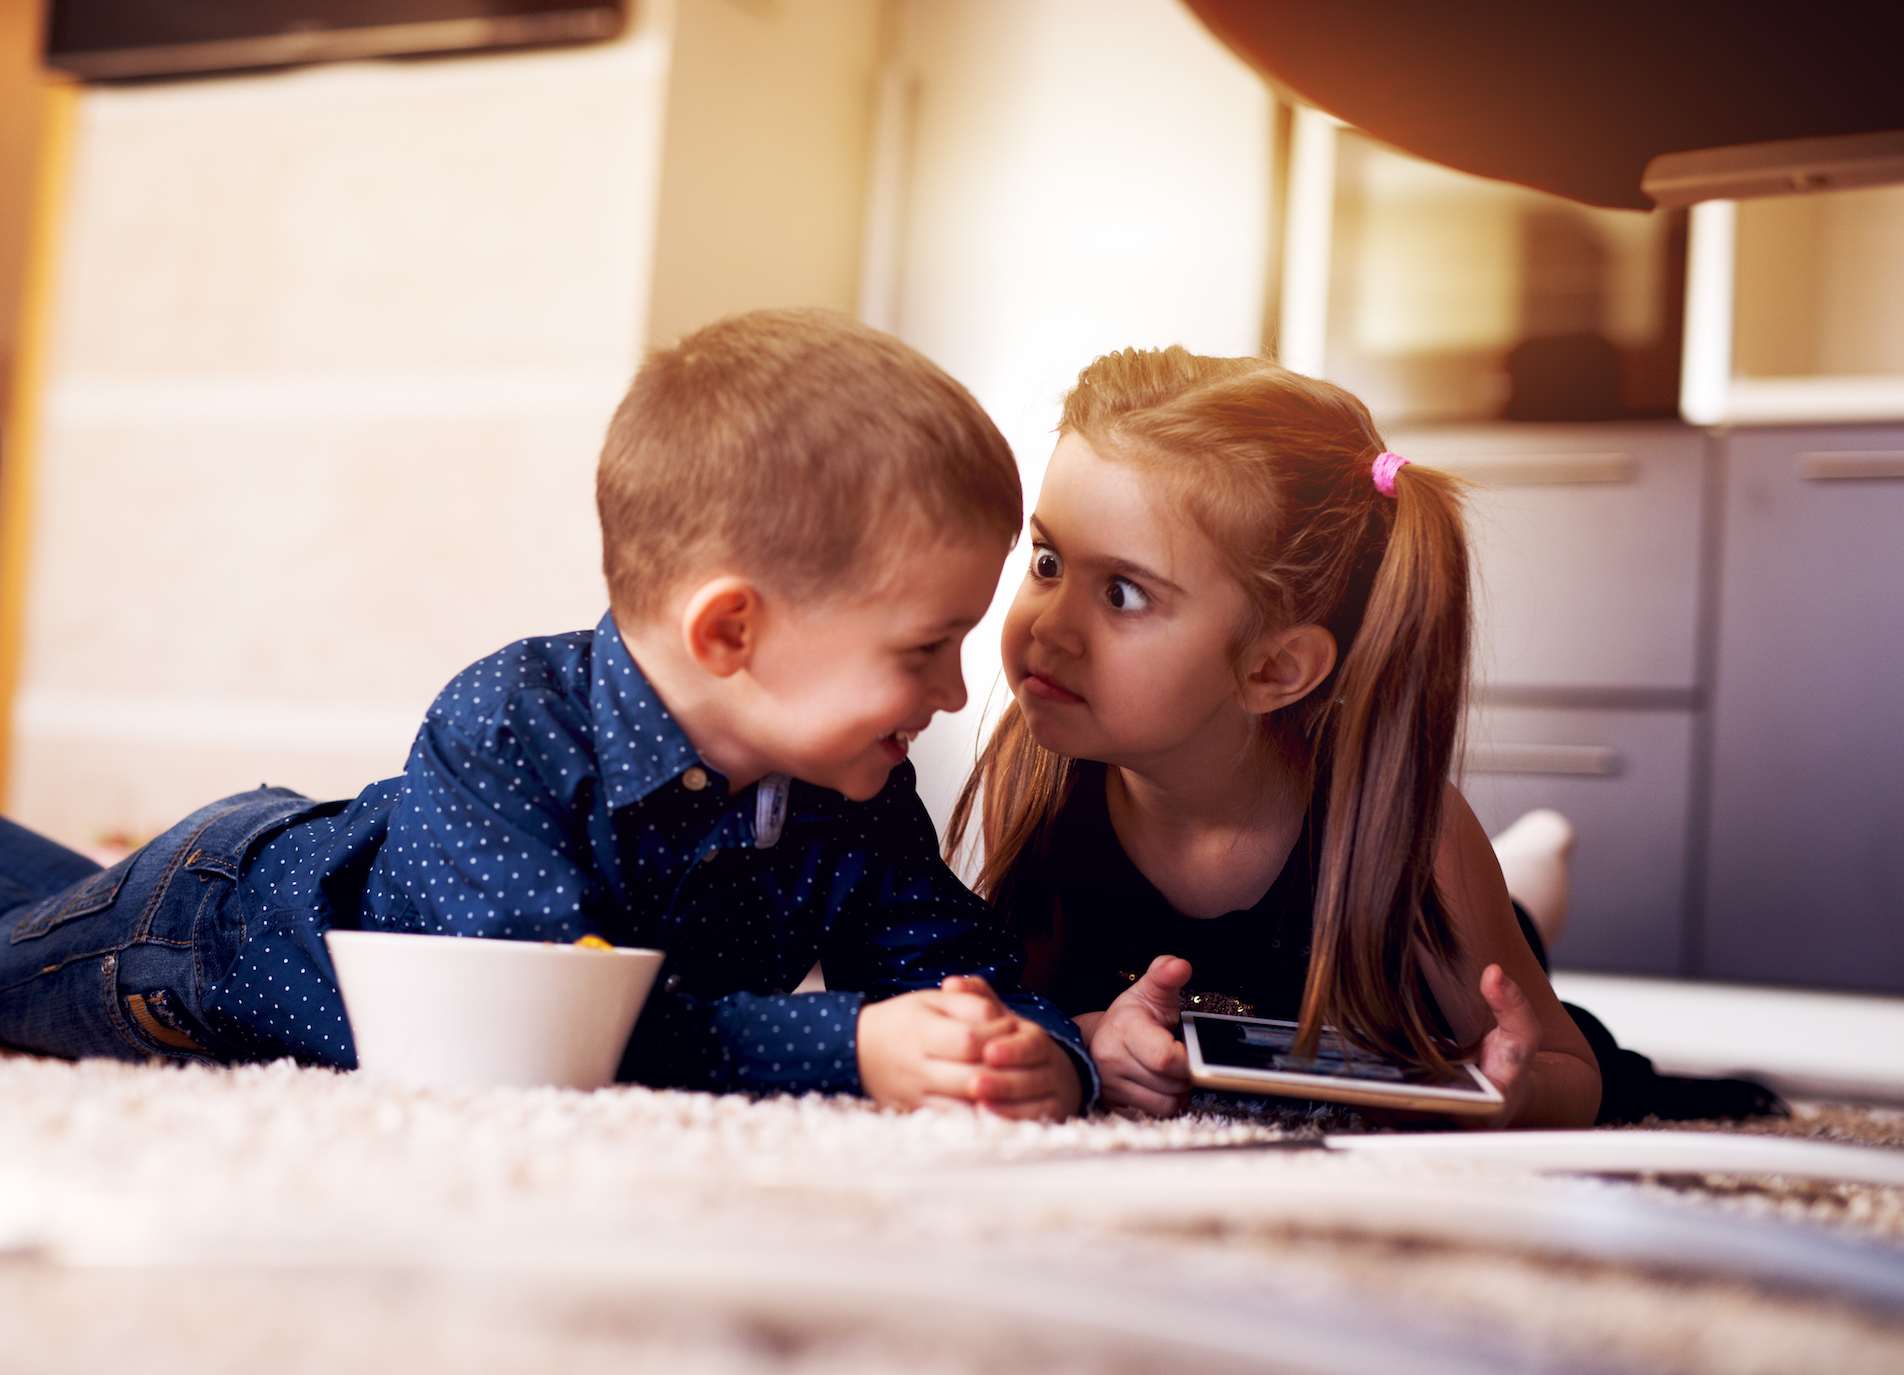 Children may be spared from the negative outcome of living with squabbling parents when they have positive relationships with siblings.